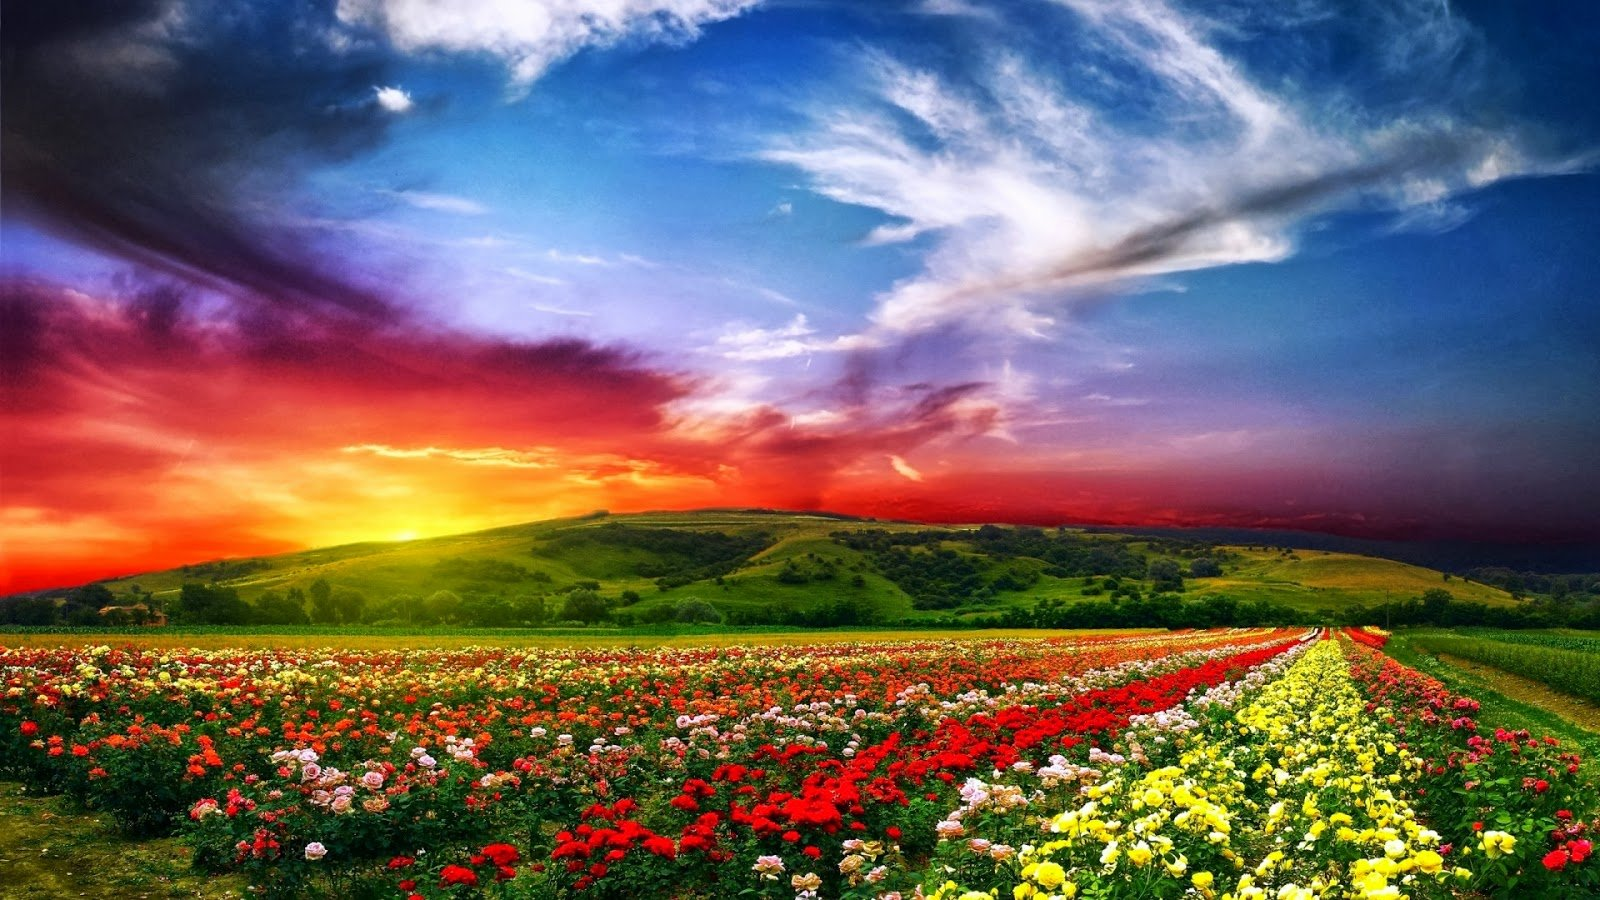 nature wallpapers download full hd nature wallpapers 1600x900